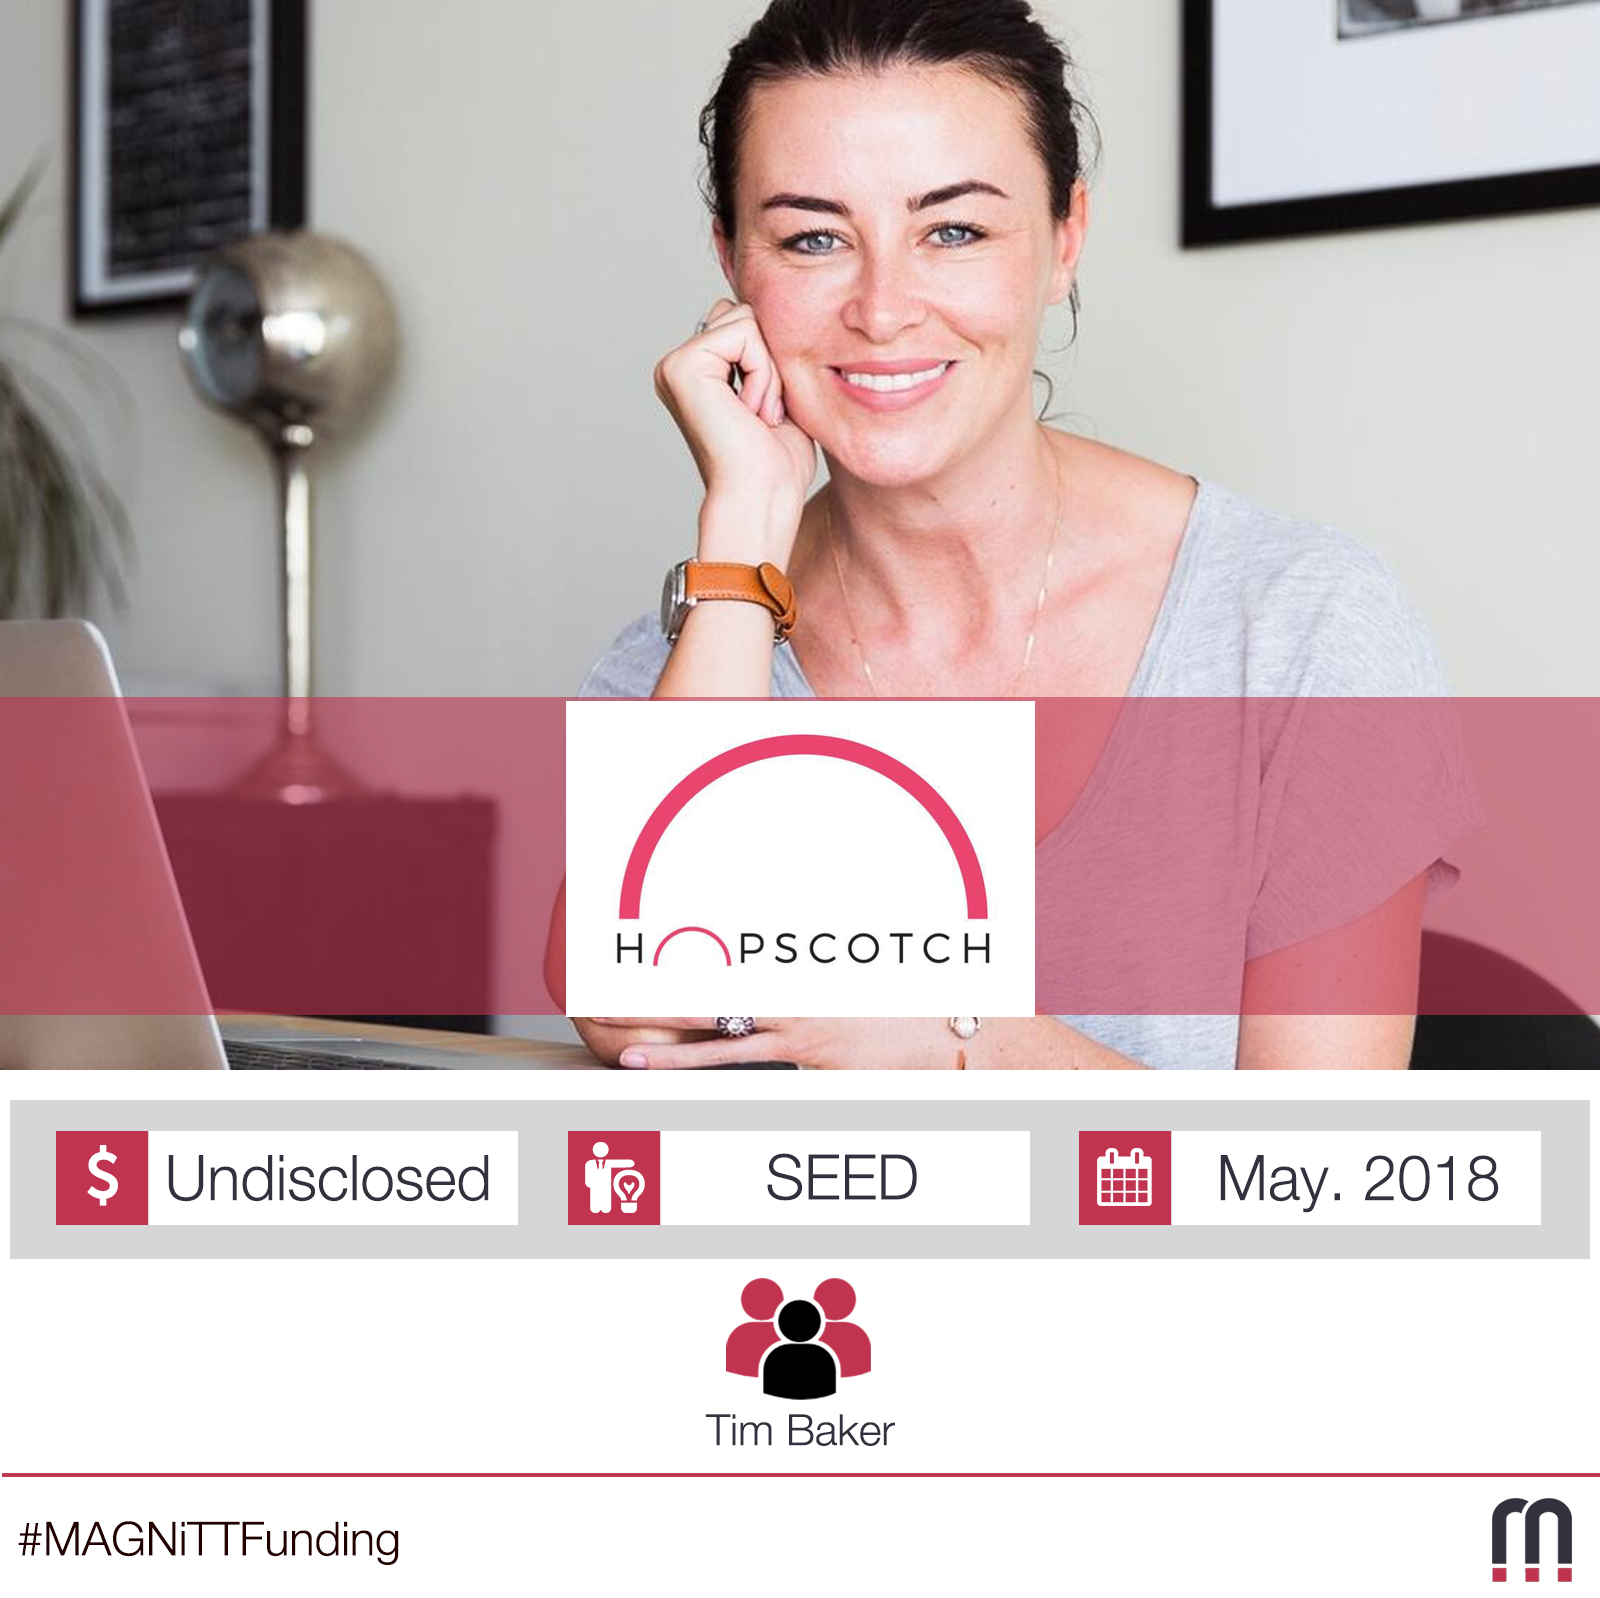 Women's recruitment startup Hopscotch rebrands after securing seed investment